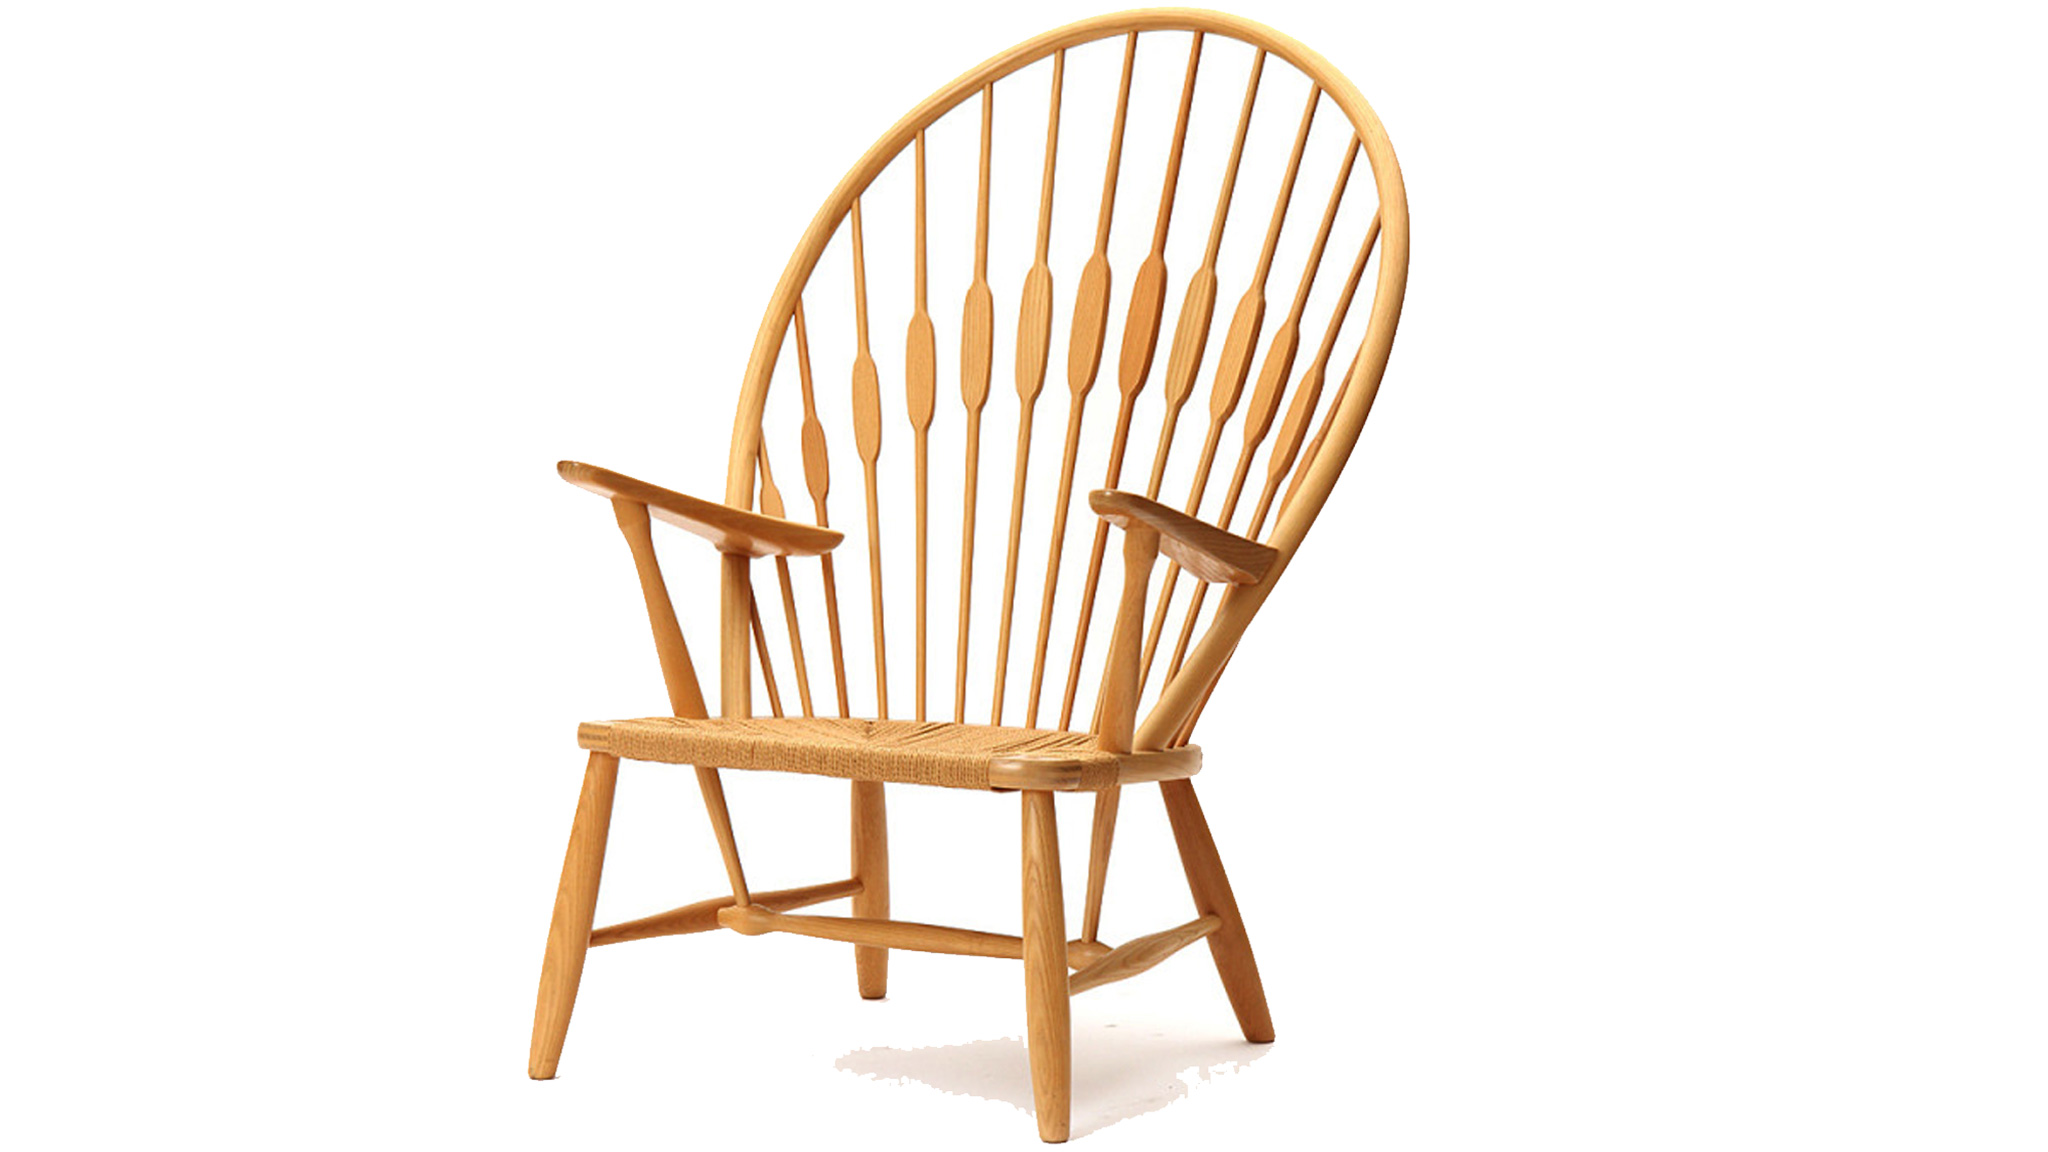 design classic the peacock chair by hans wegner financial times